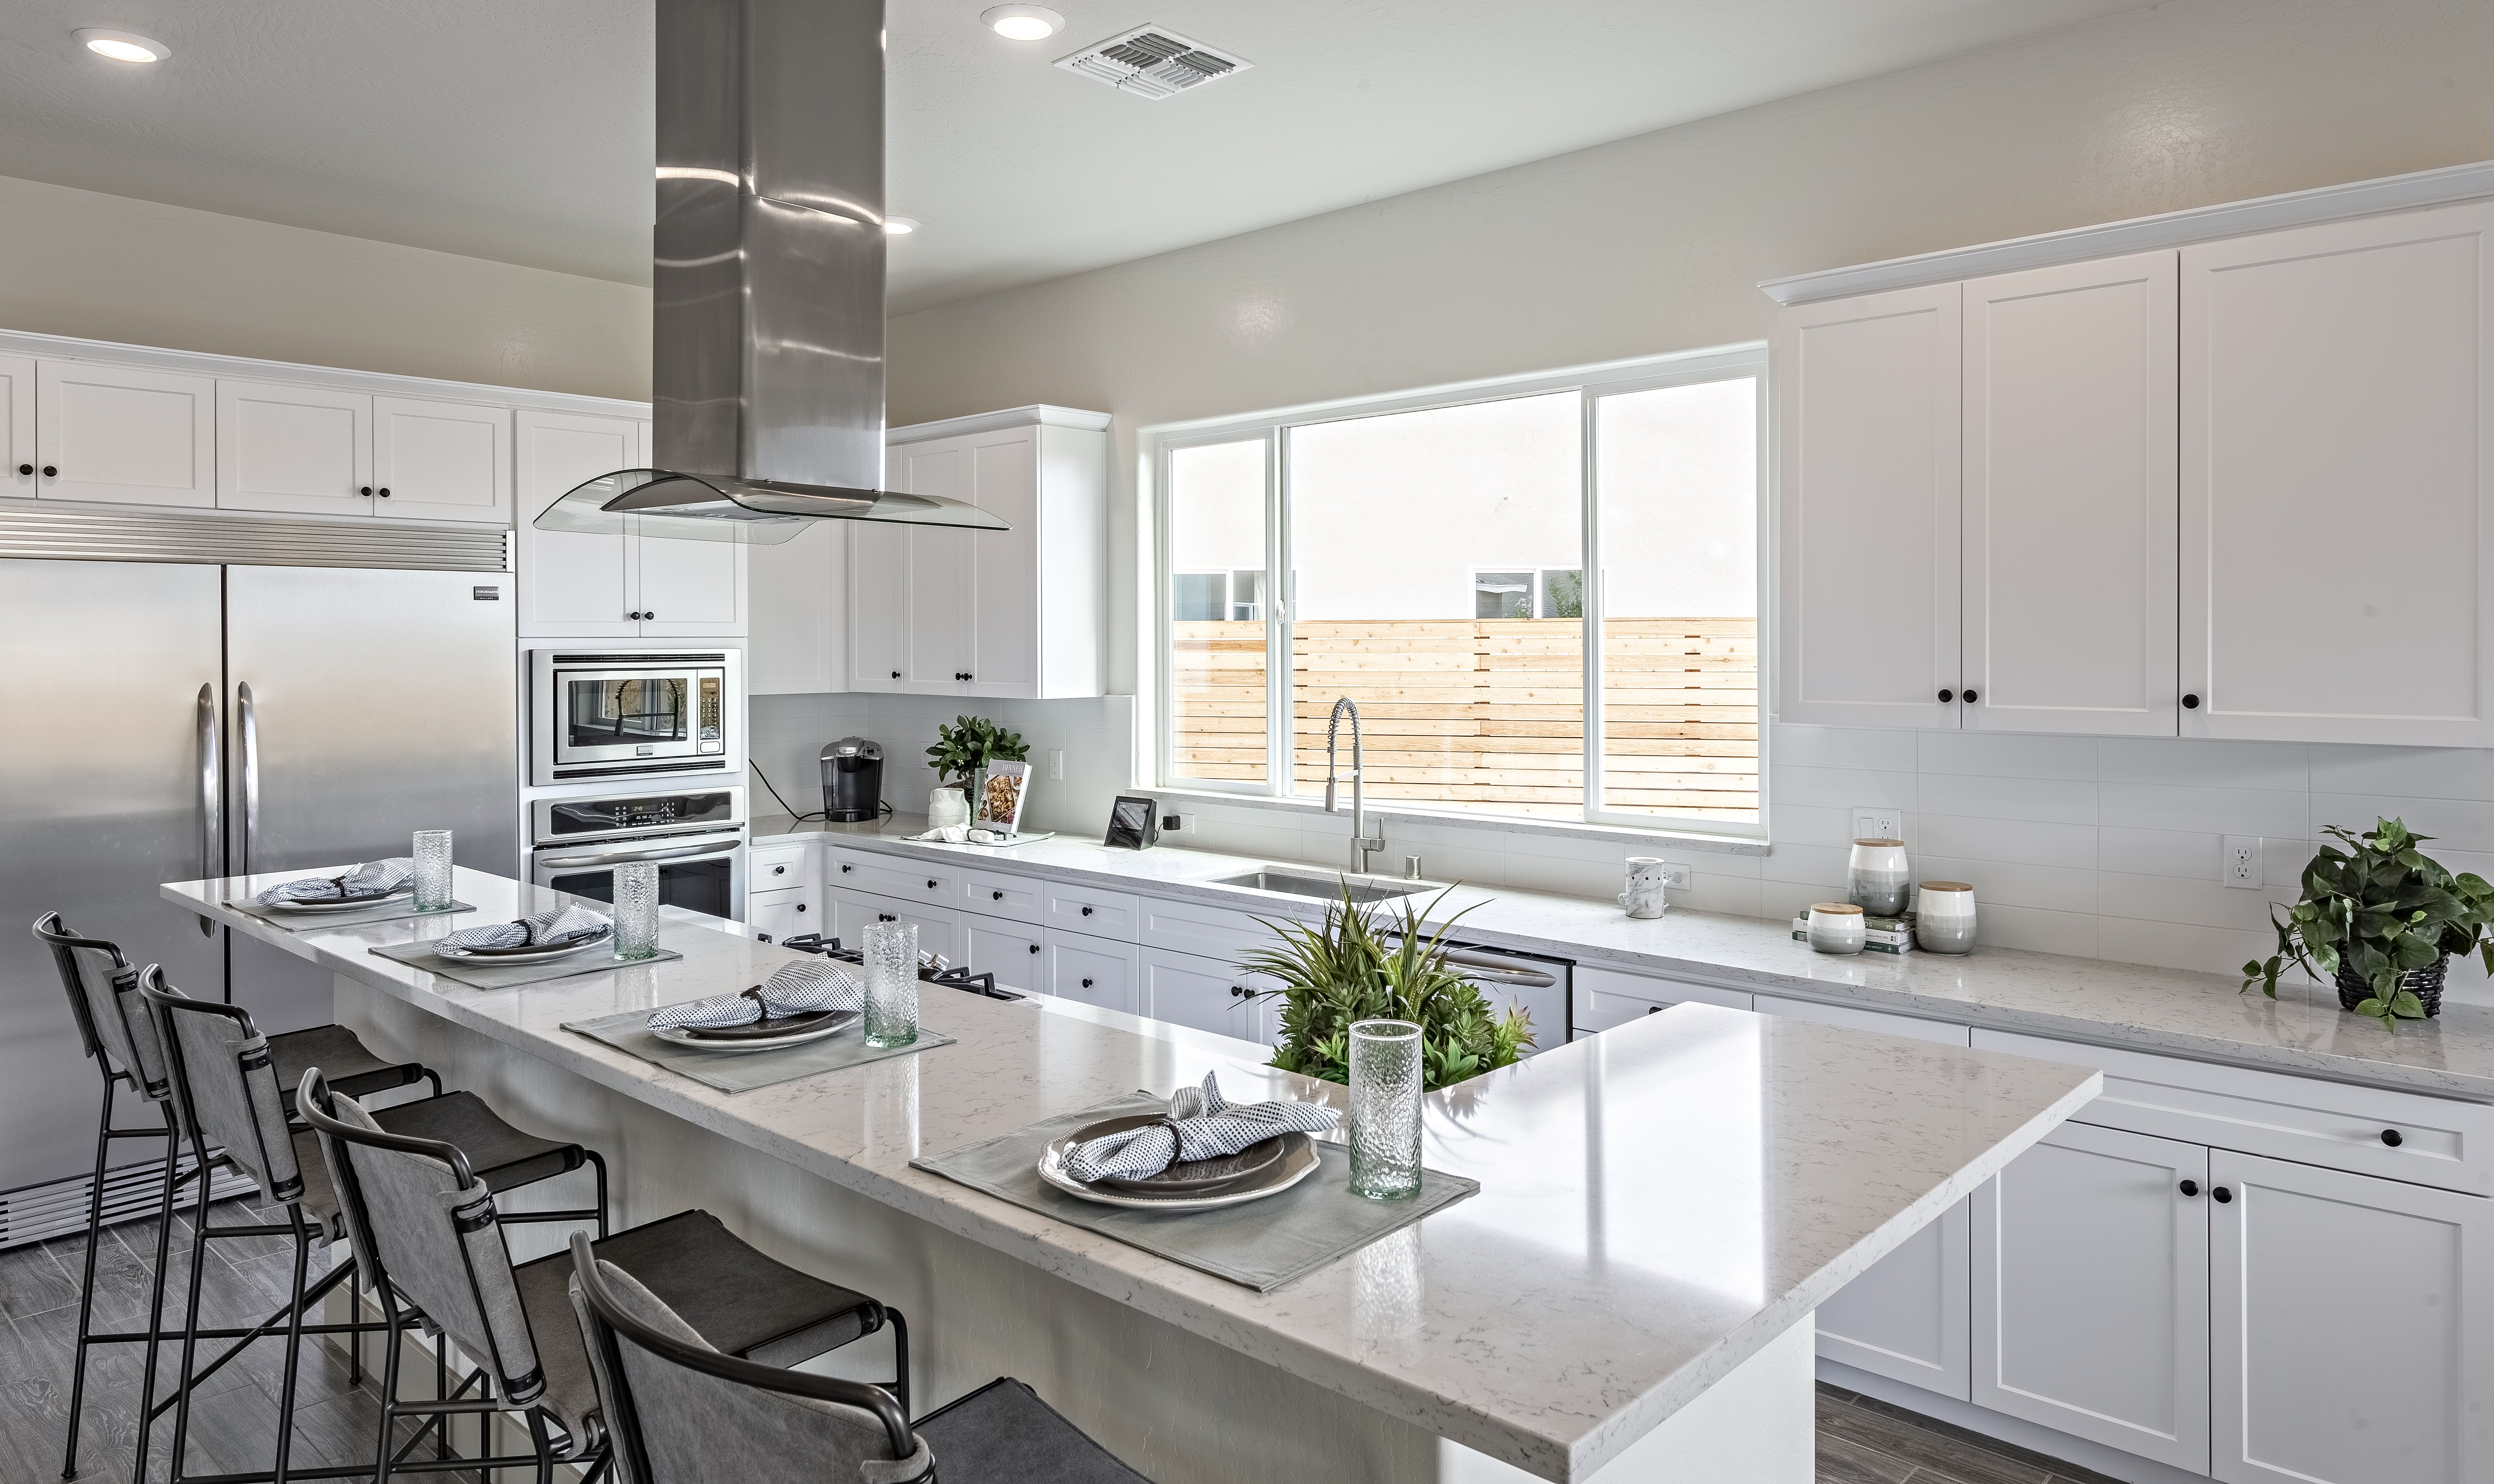 High Top Breakfast Bar Gives Your Family The Ability To Connect With You Awhile You Cook Kitchen Remodel Software Kitchen Remodel Kitchen Redesign